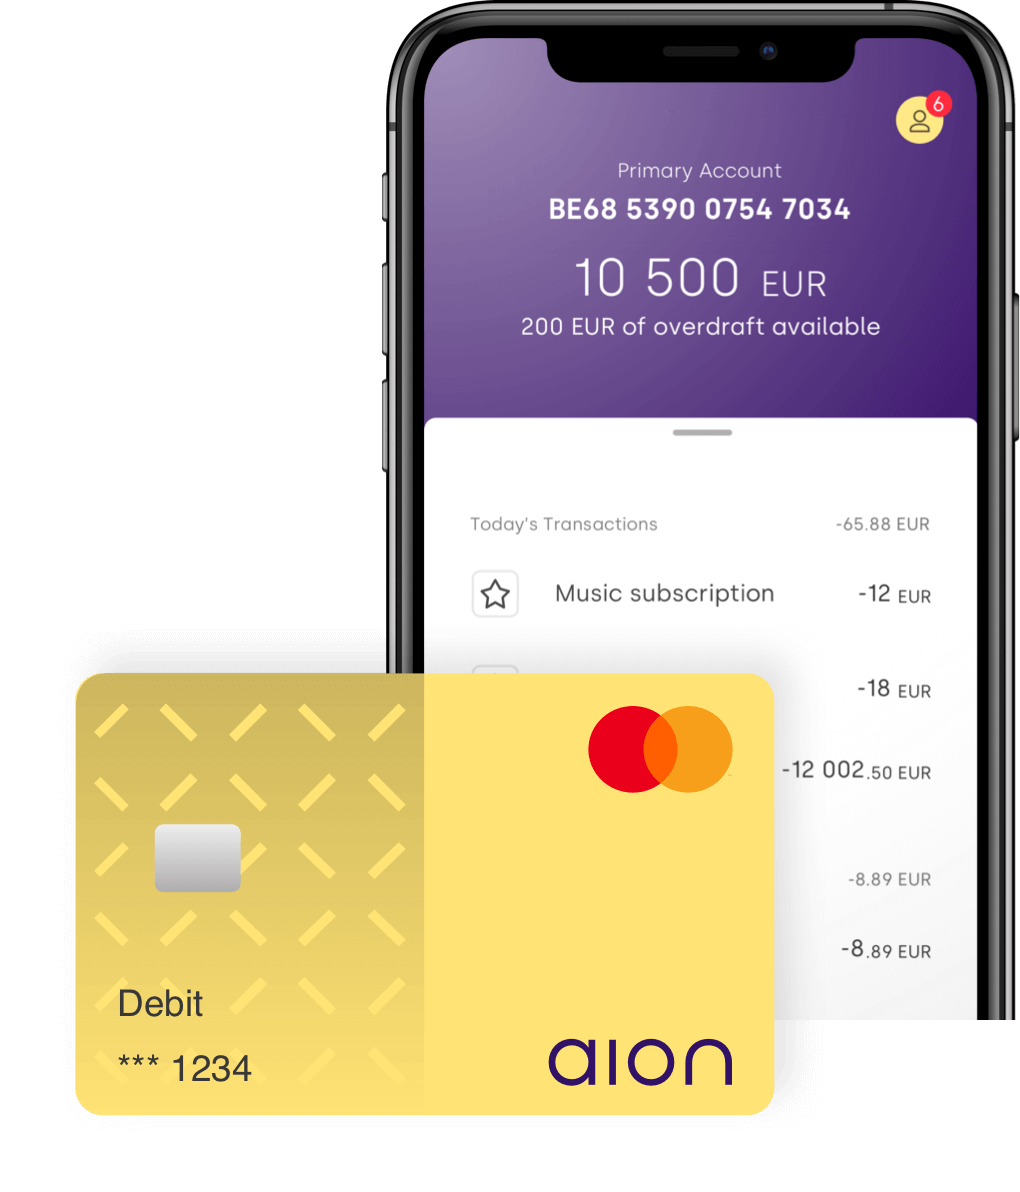 Aion Bank account with transactions and debit card